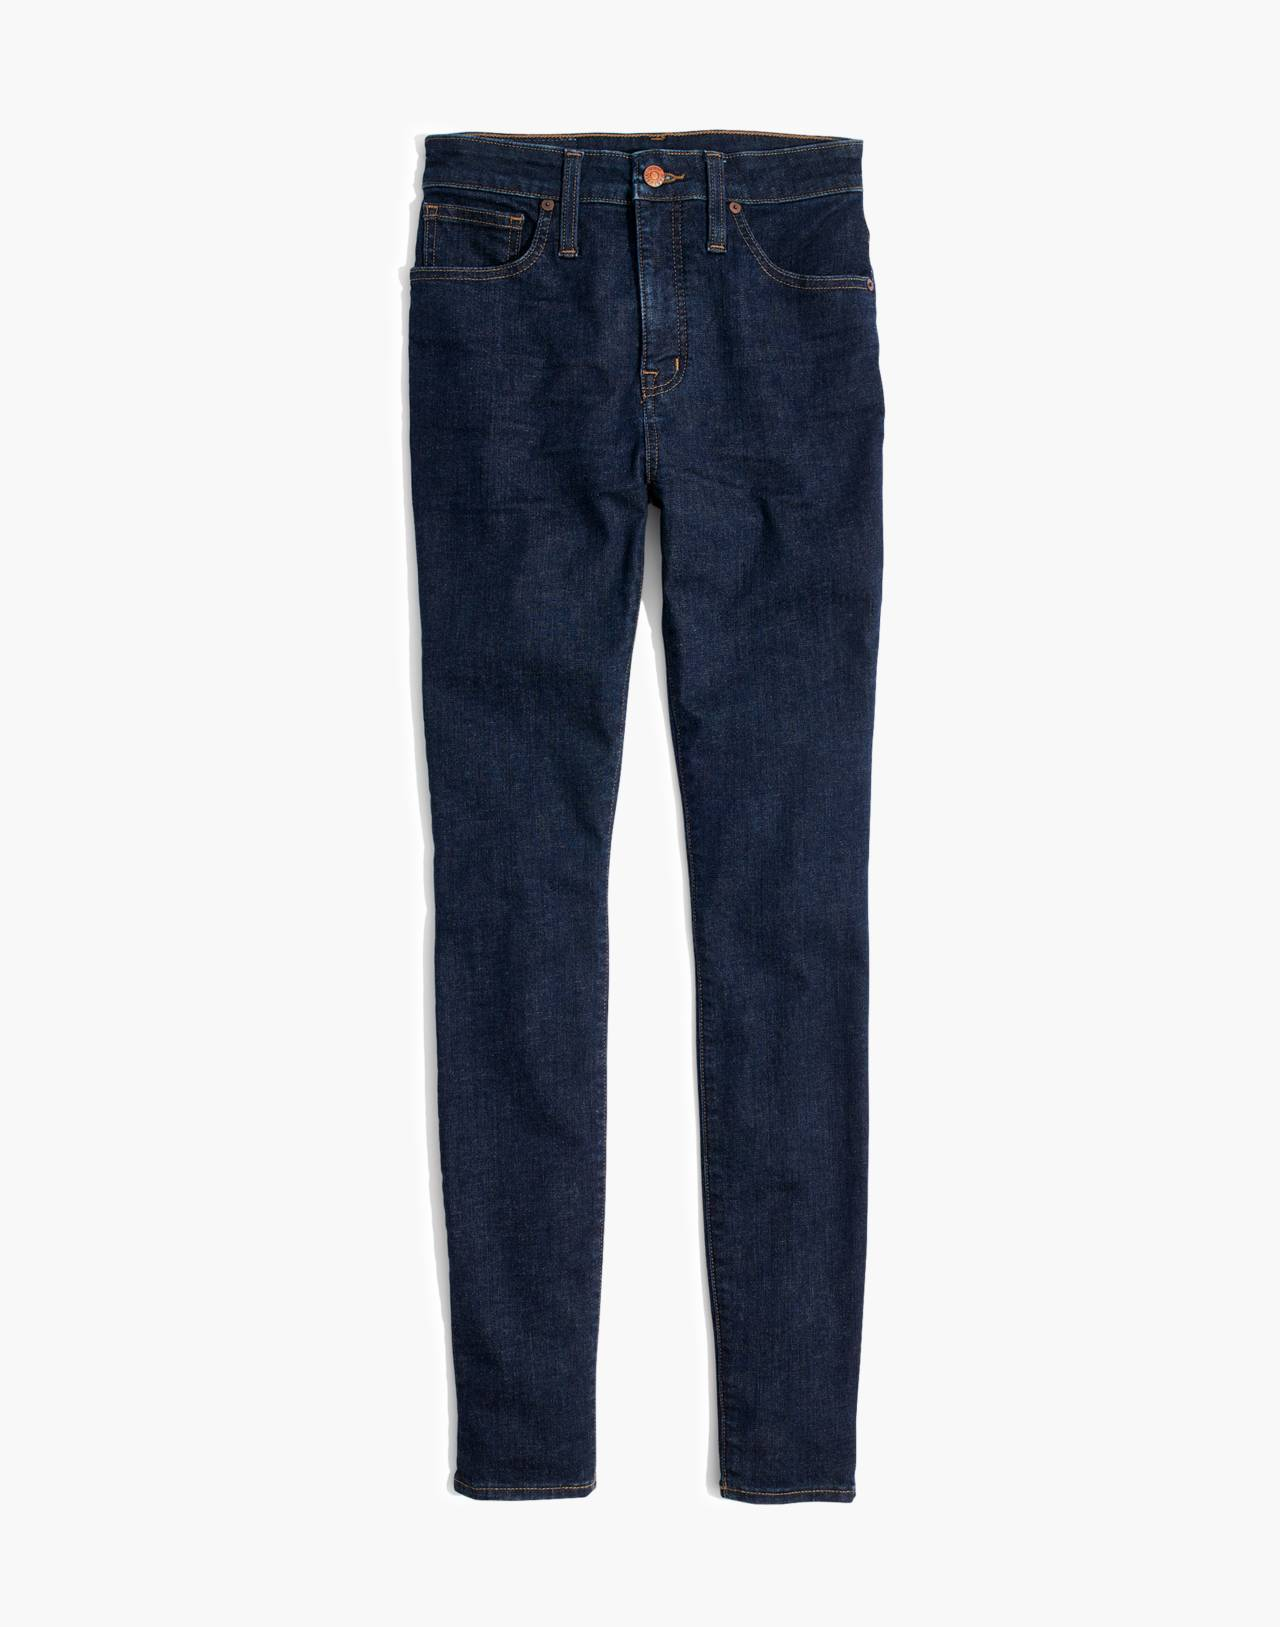 Curvy High-Rise Skinny Jeans in Lucille Wash in lucille wash image 4